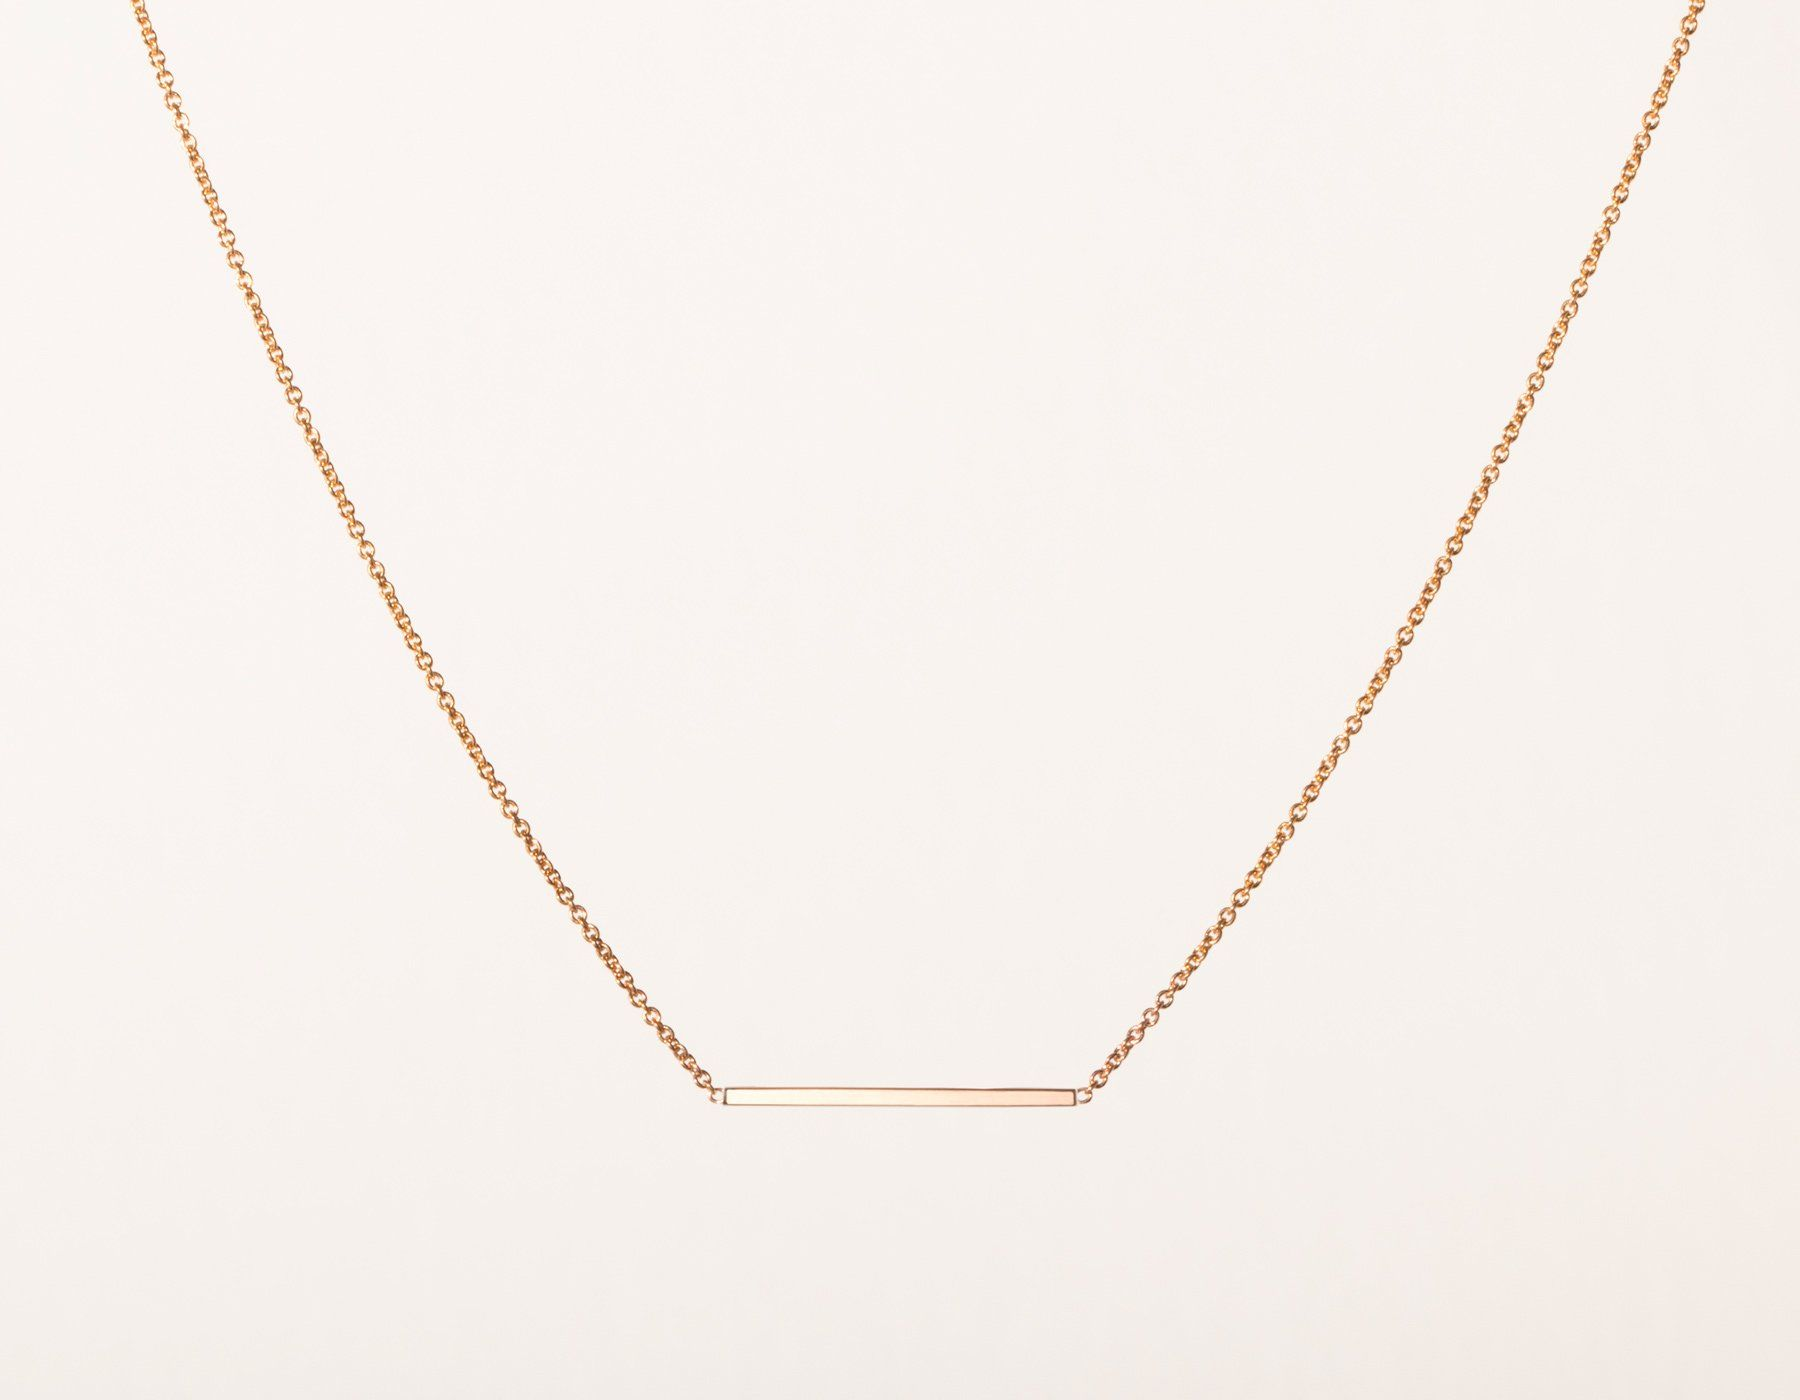 22f18b95a45 Simple classic Line Necklace 14k solid gold small rectangular bar thin chain  spring ring clasp Vrai & Oro minimalist jewelry, 14K Rose Gold